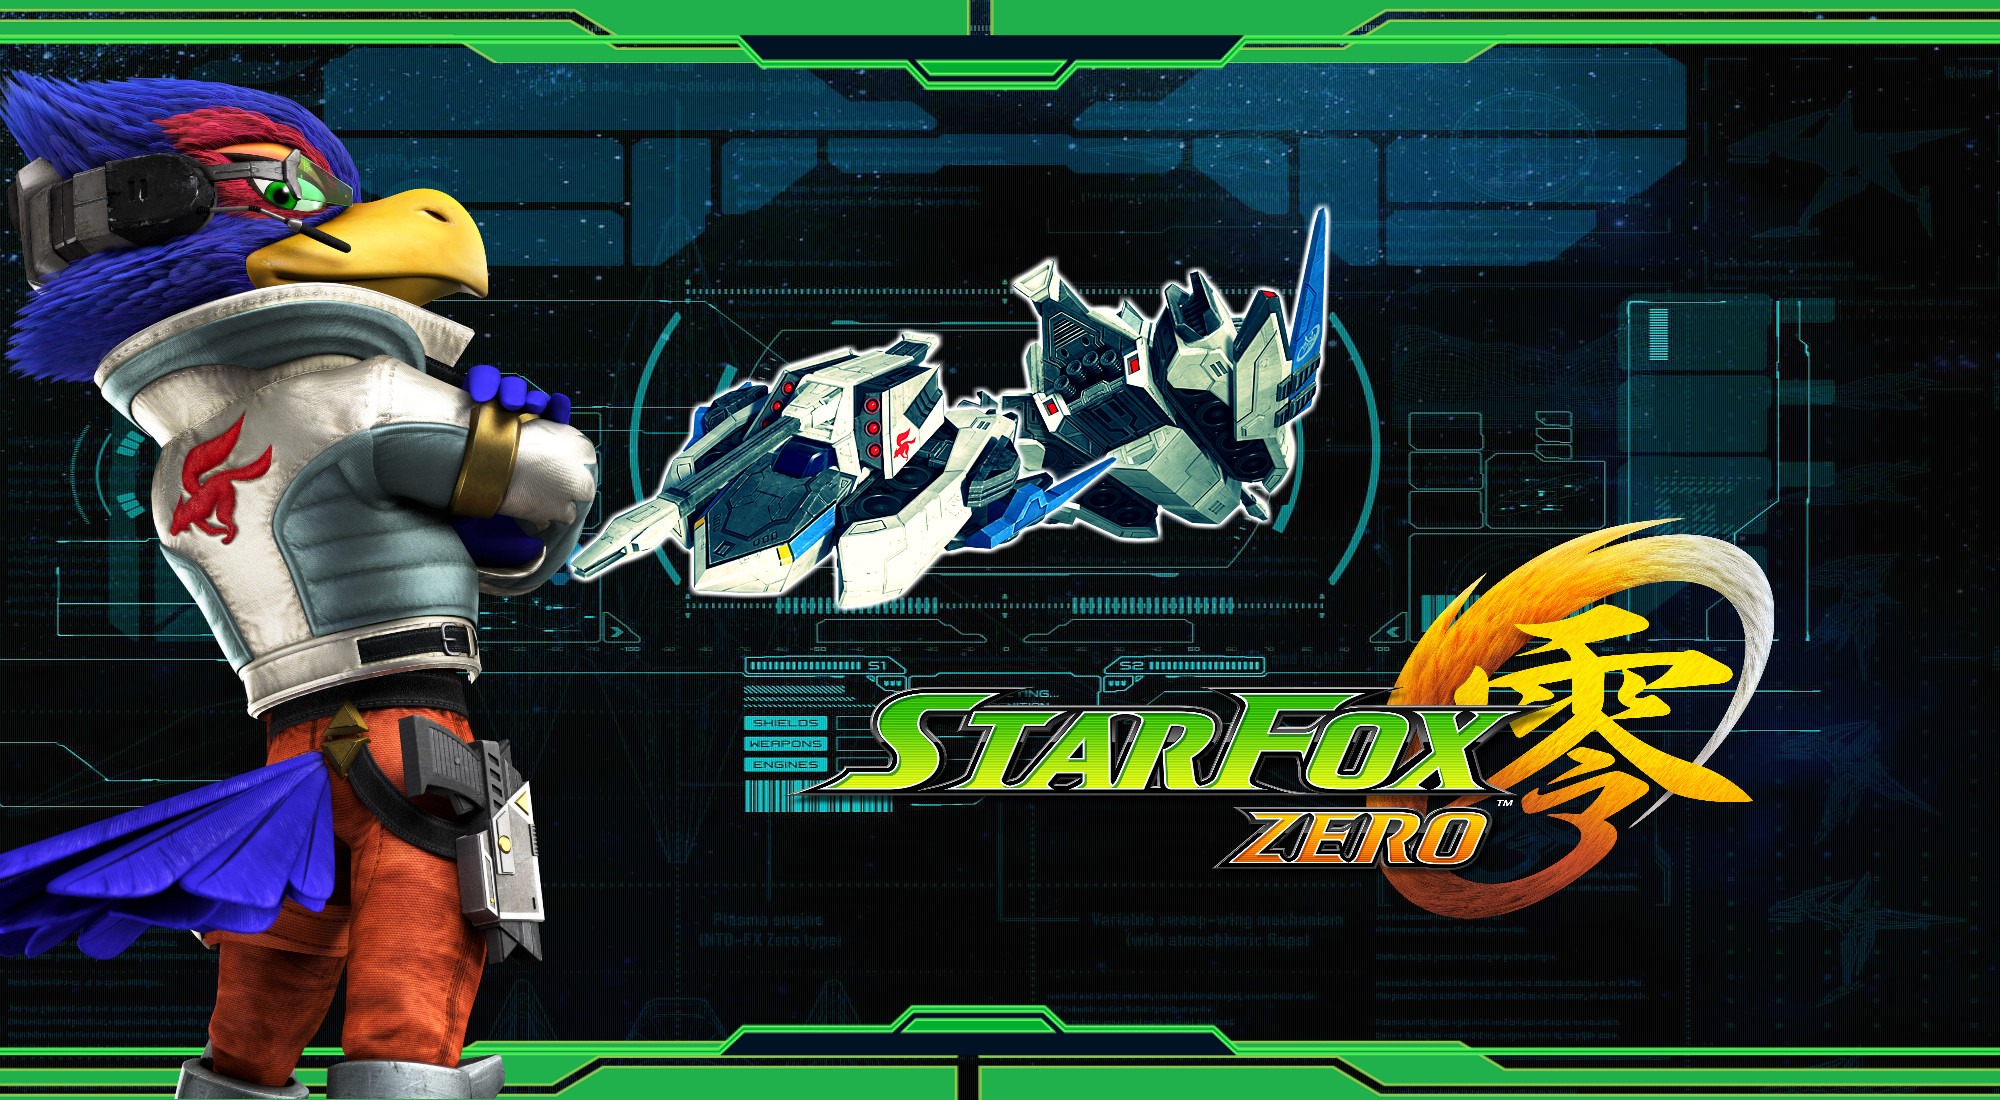 2000x1100 ... Star Fox Zero - Gravmaster Wallpaper by DaKidGaming